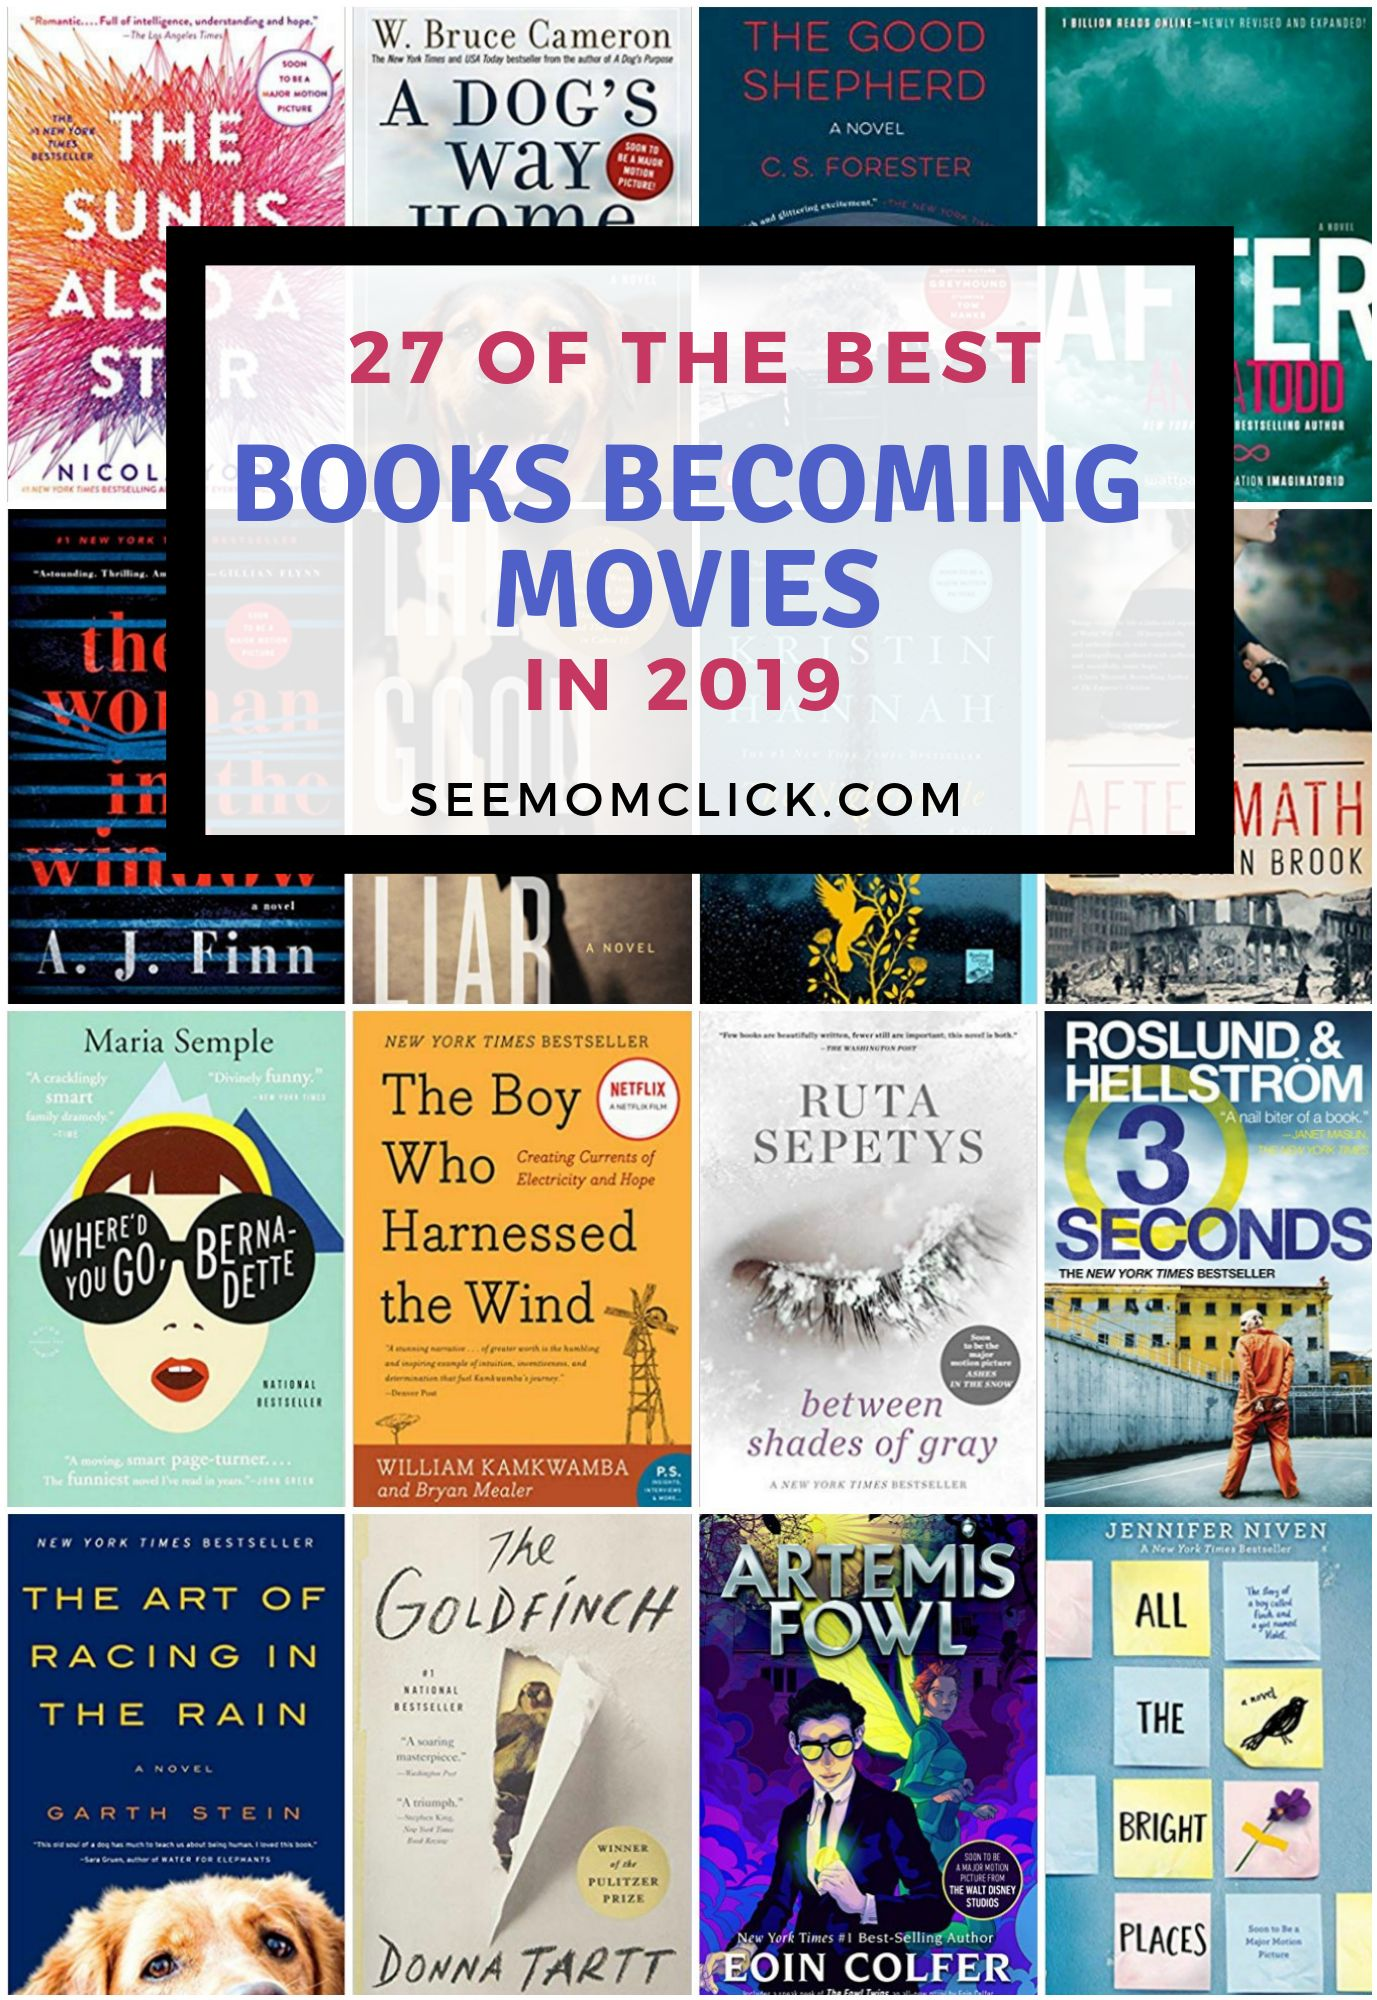 Best Book Club Books 2019 27 Of the Best Books Be Ing Movies In 2019